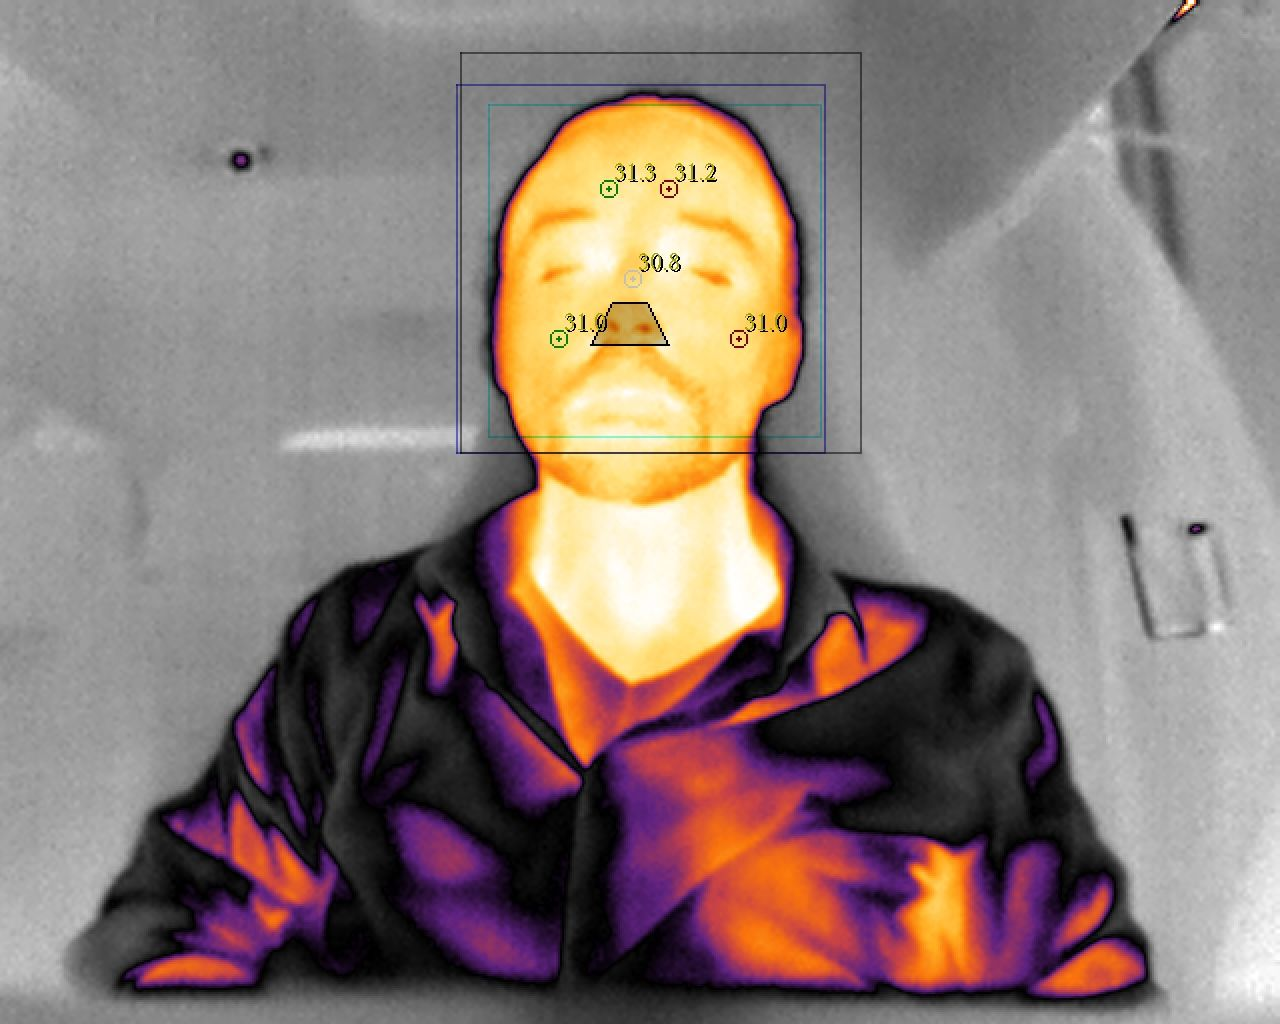 Infrared image of a driver's heat stress in a car